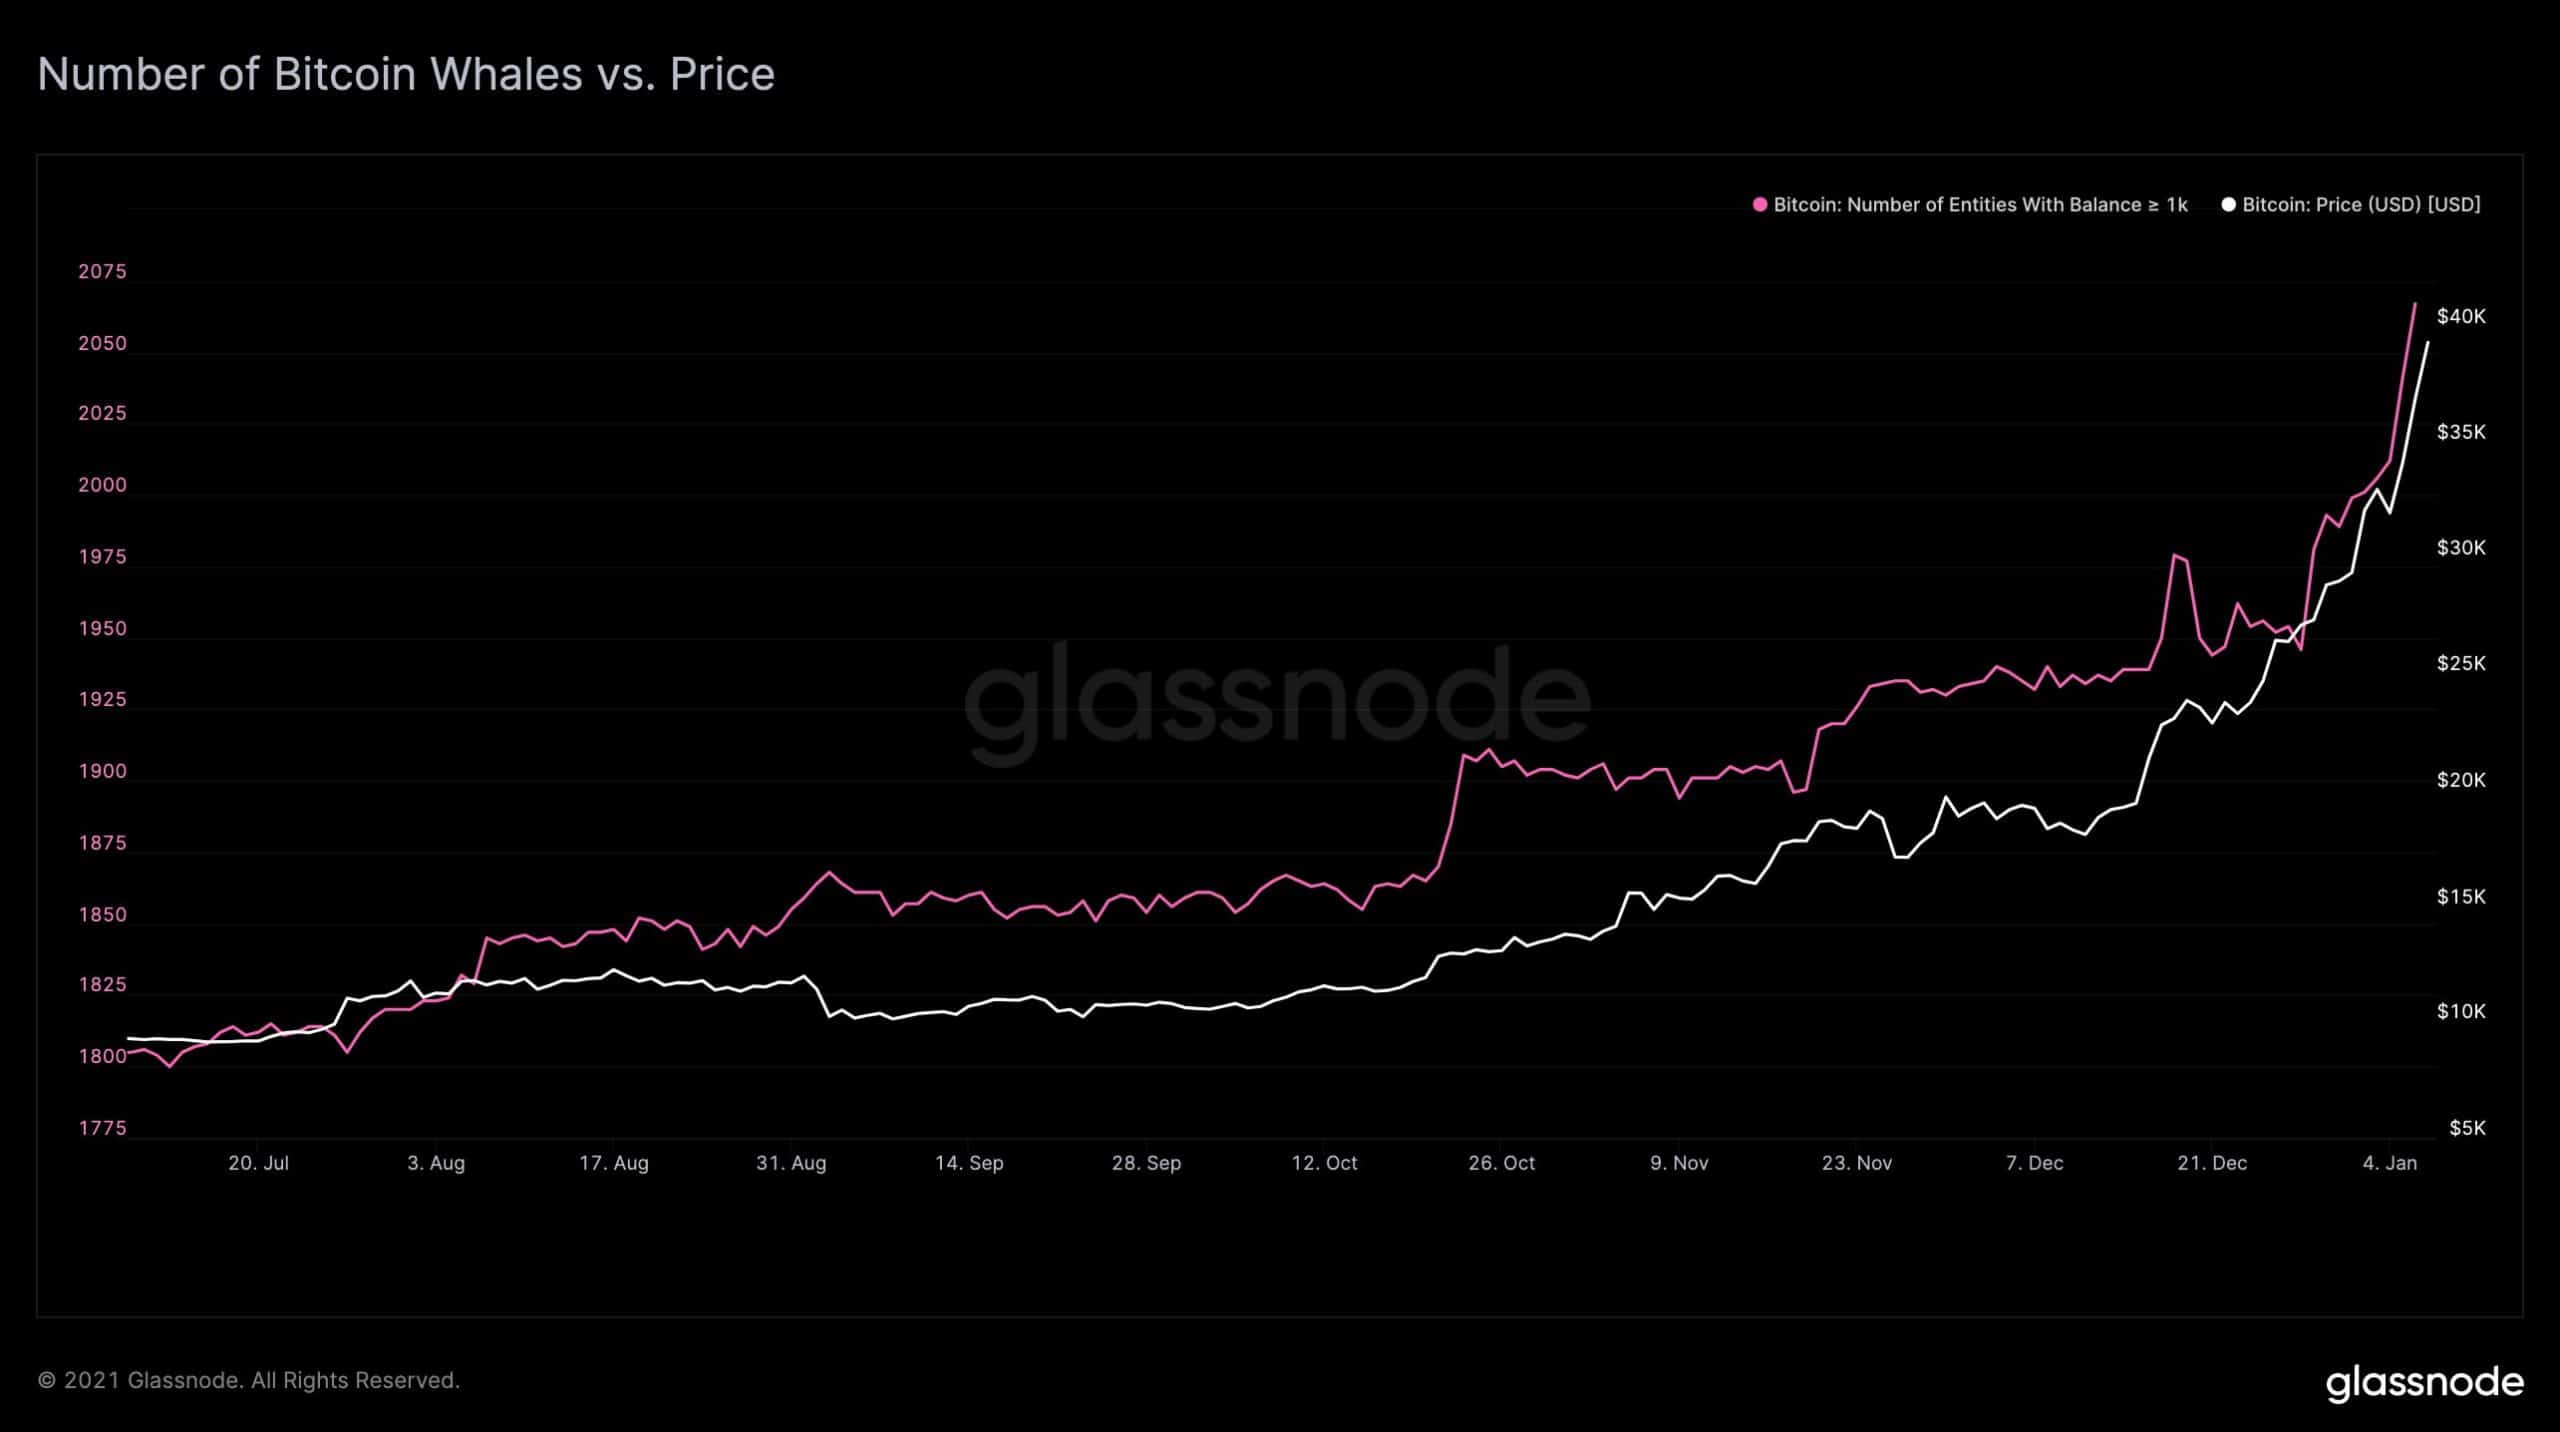 Bitcoin Price Vs. Bitcoin Whales. Source: Glassnode